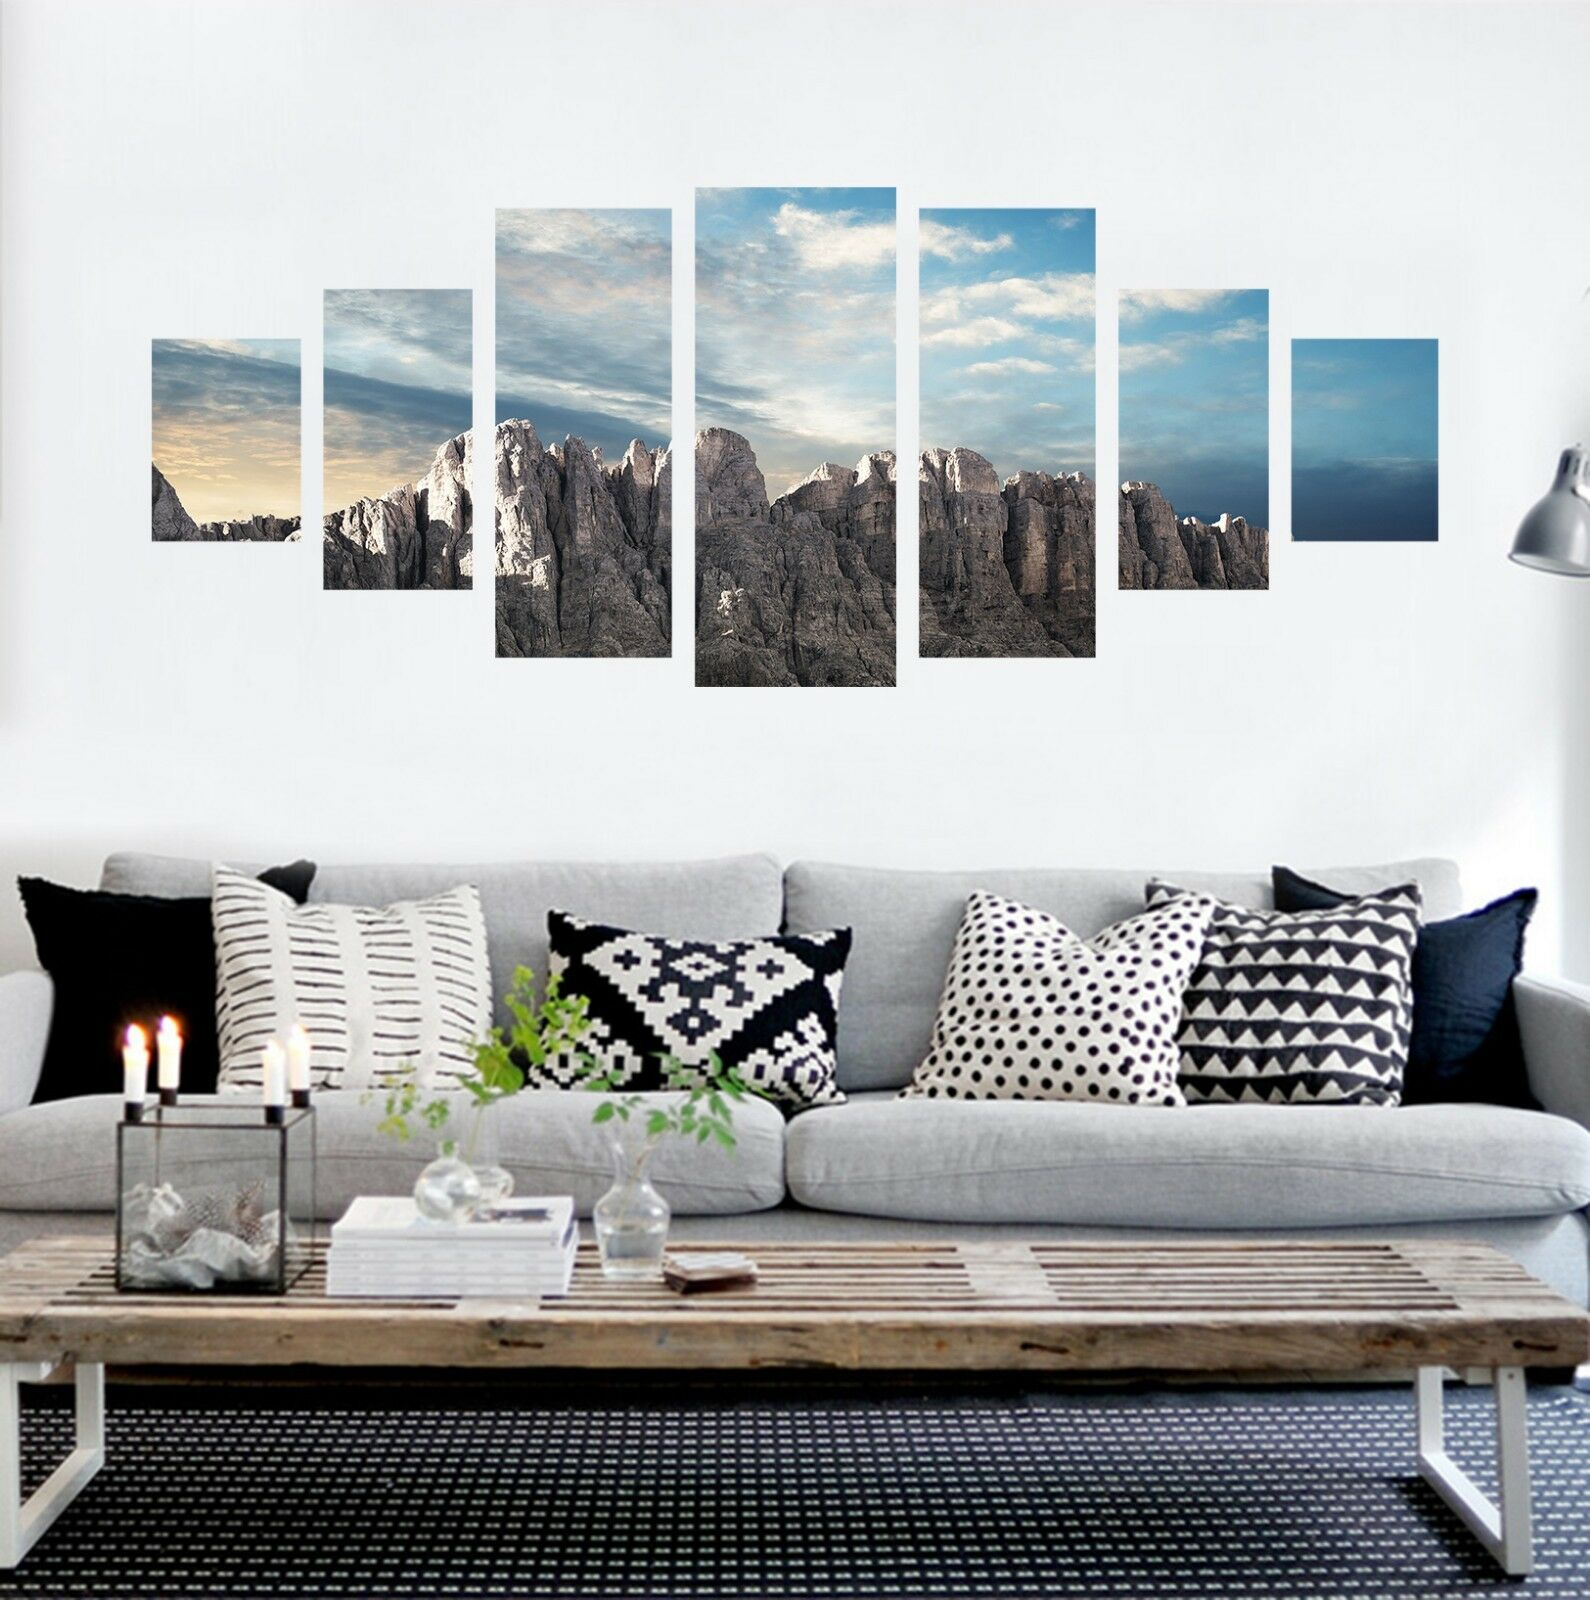 3D Mountain 769 Unframed Print Wall Paper Decal Wall Deco Indoor AJ Wall Jenny